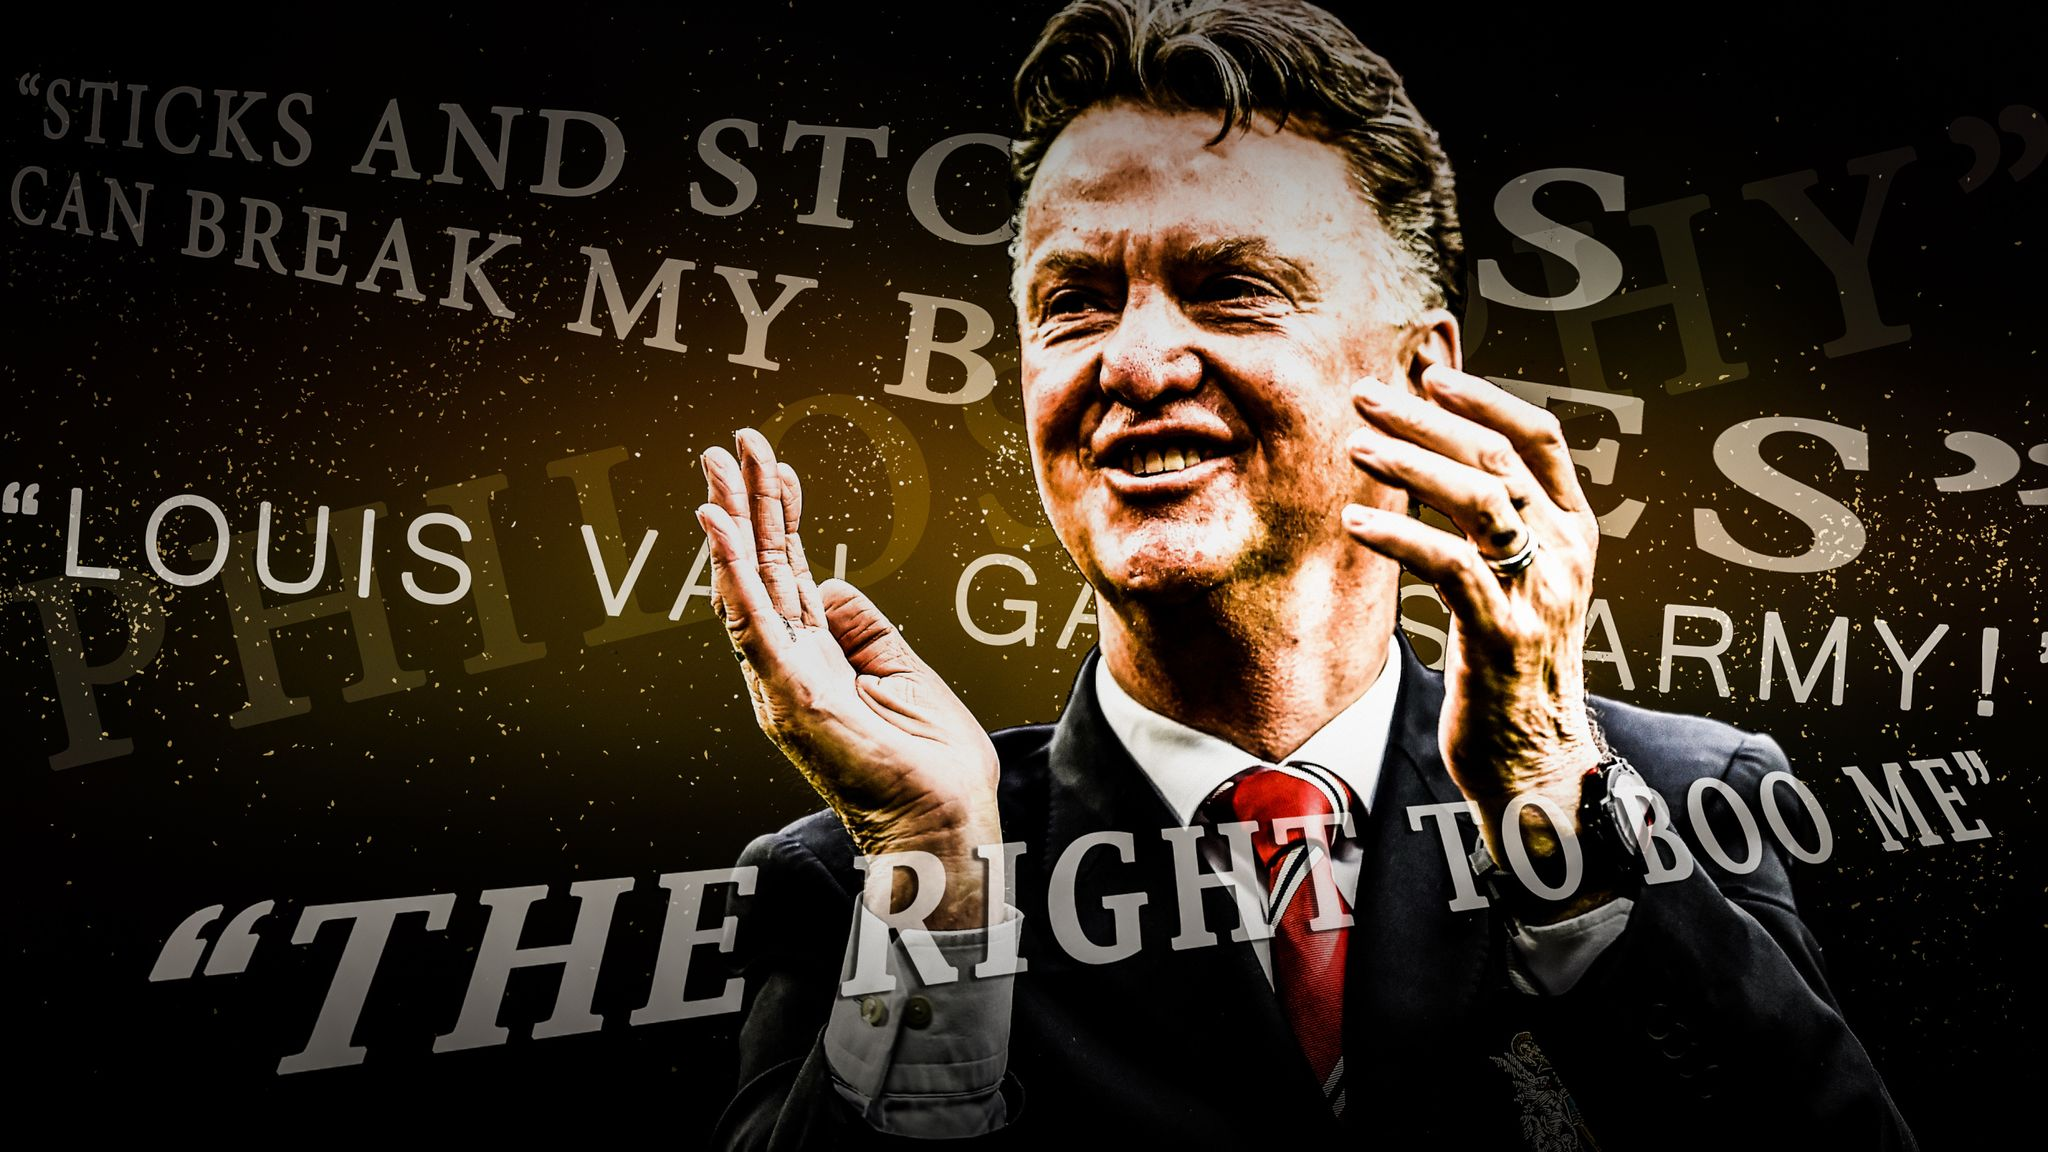 Louis Van Gaal S Best Quotes From His Manchester United Tenure Football News Sky Sports